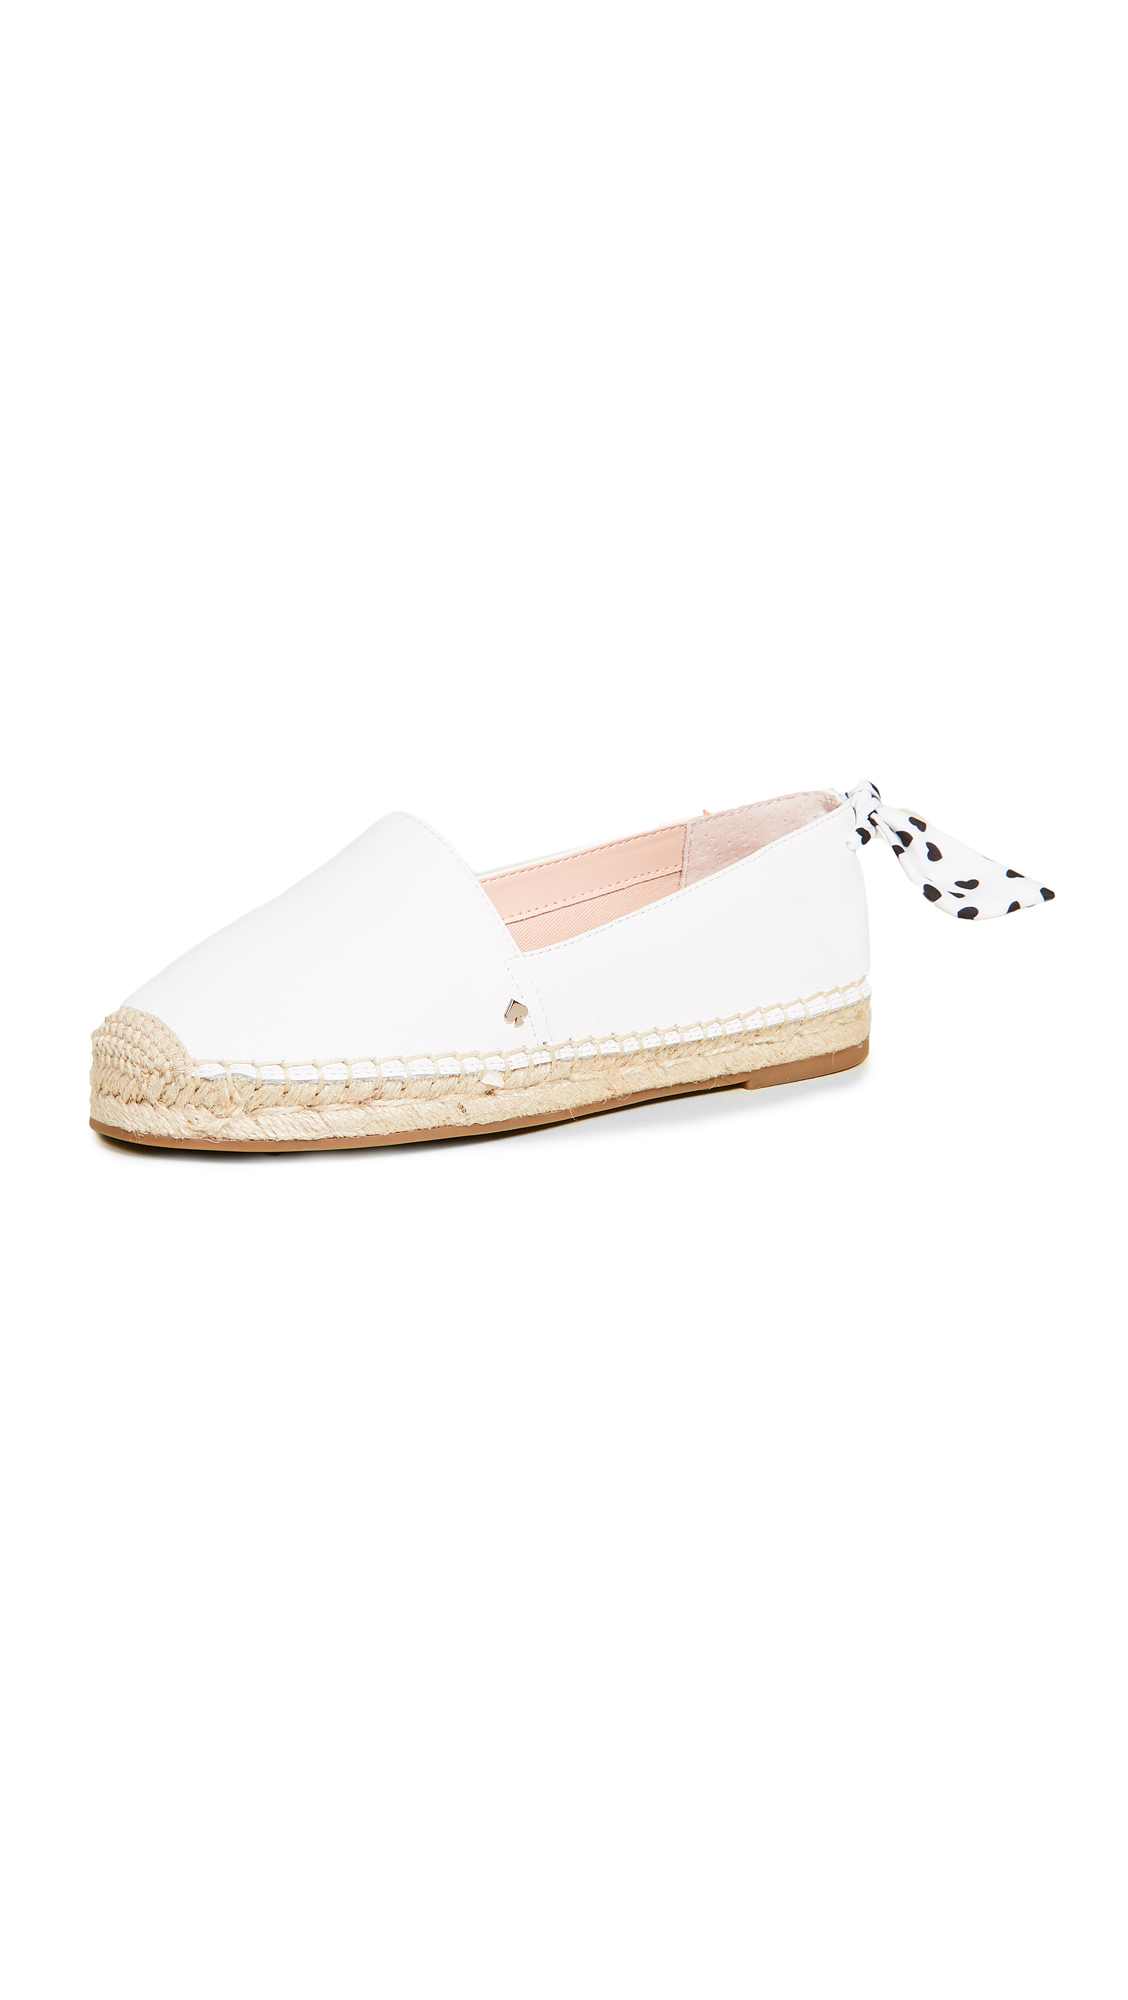 Kate Spade New York Grayson Espadrille Flats - White